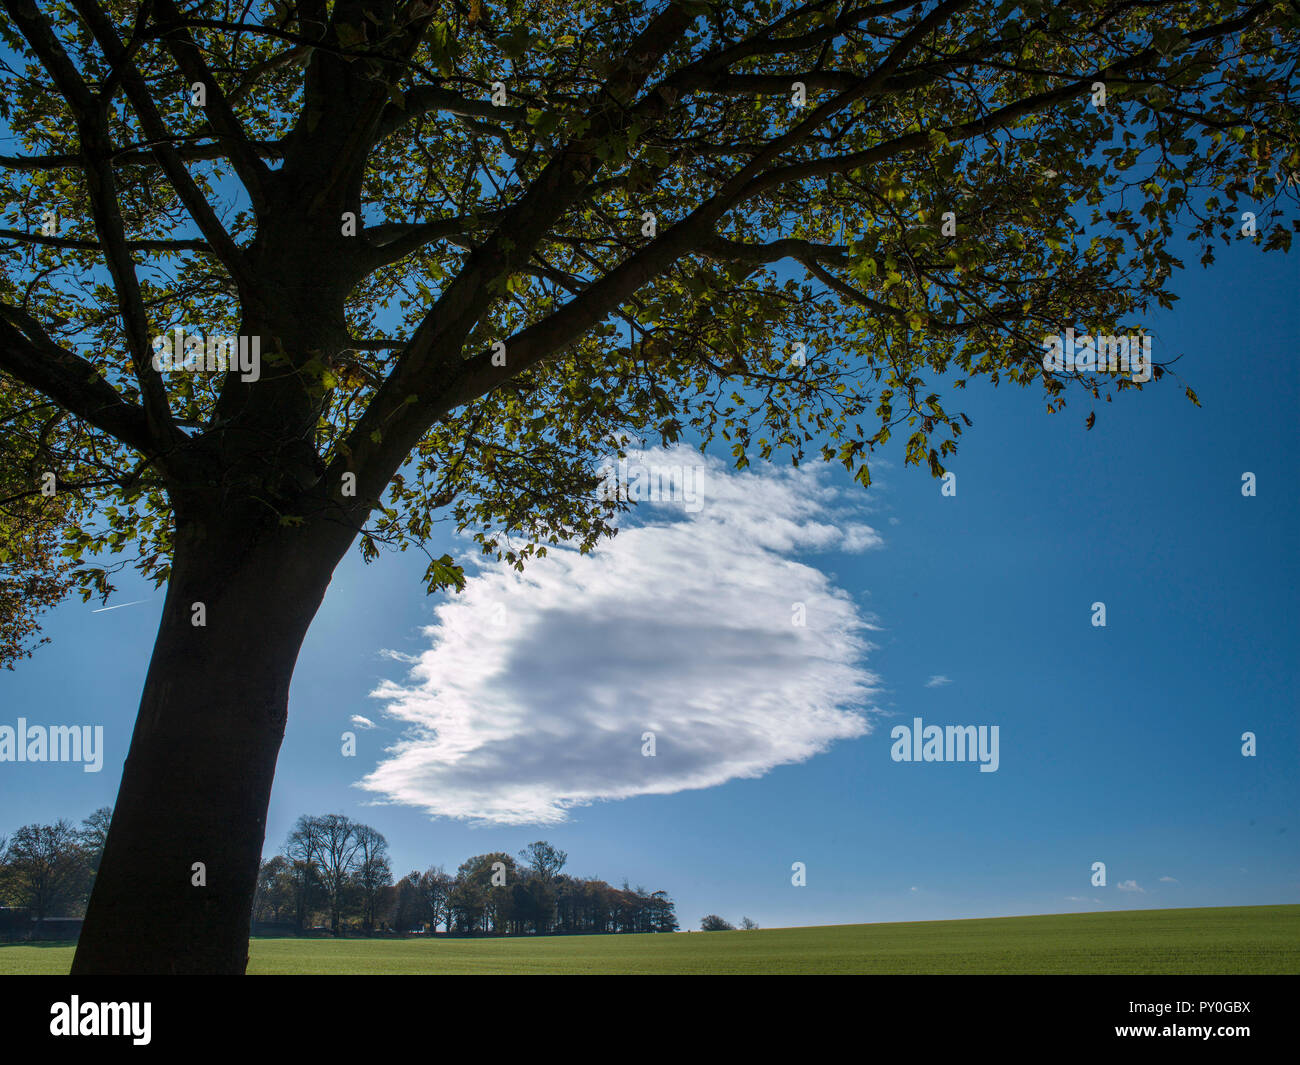 Tree and dramatic cloud against blue sky, wentworth, south yorkshire, england - Stock Image